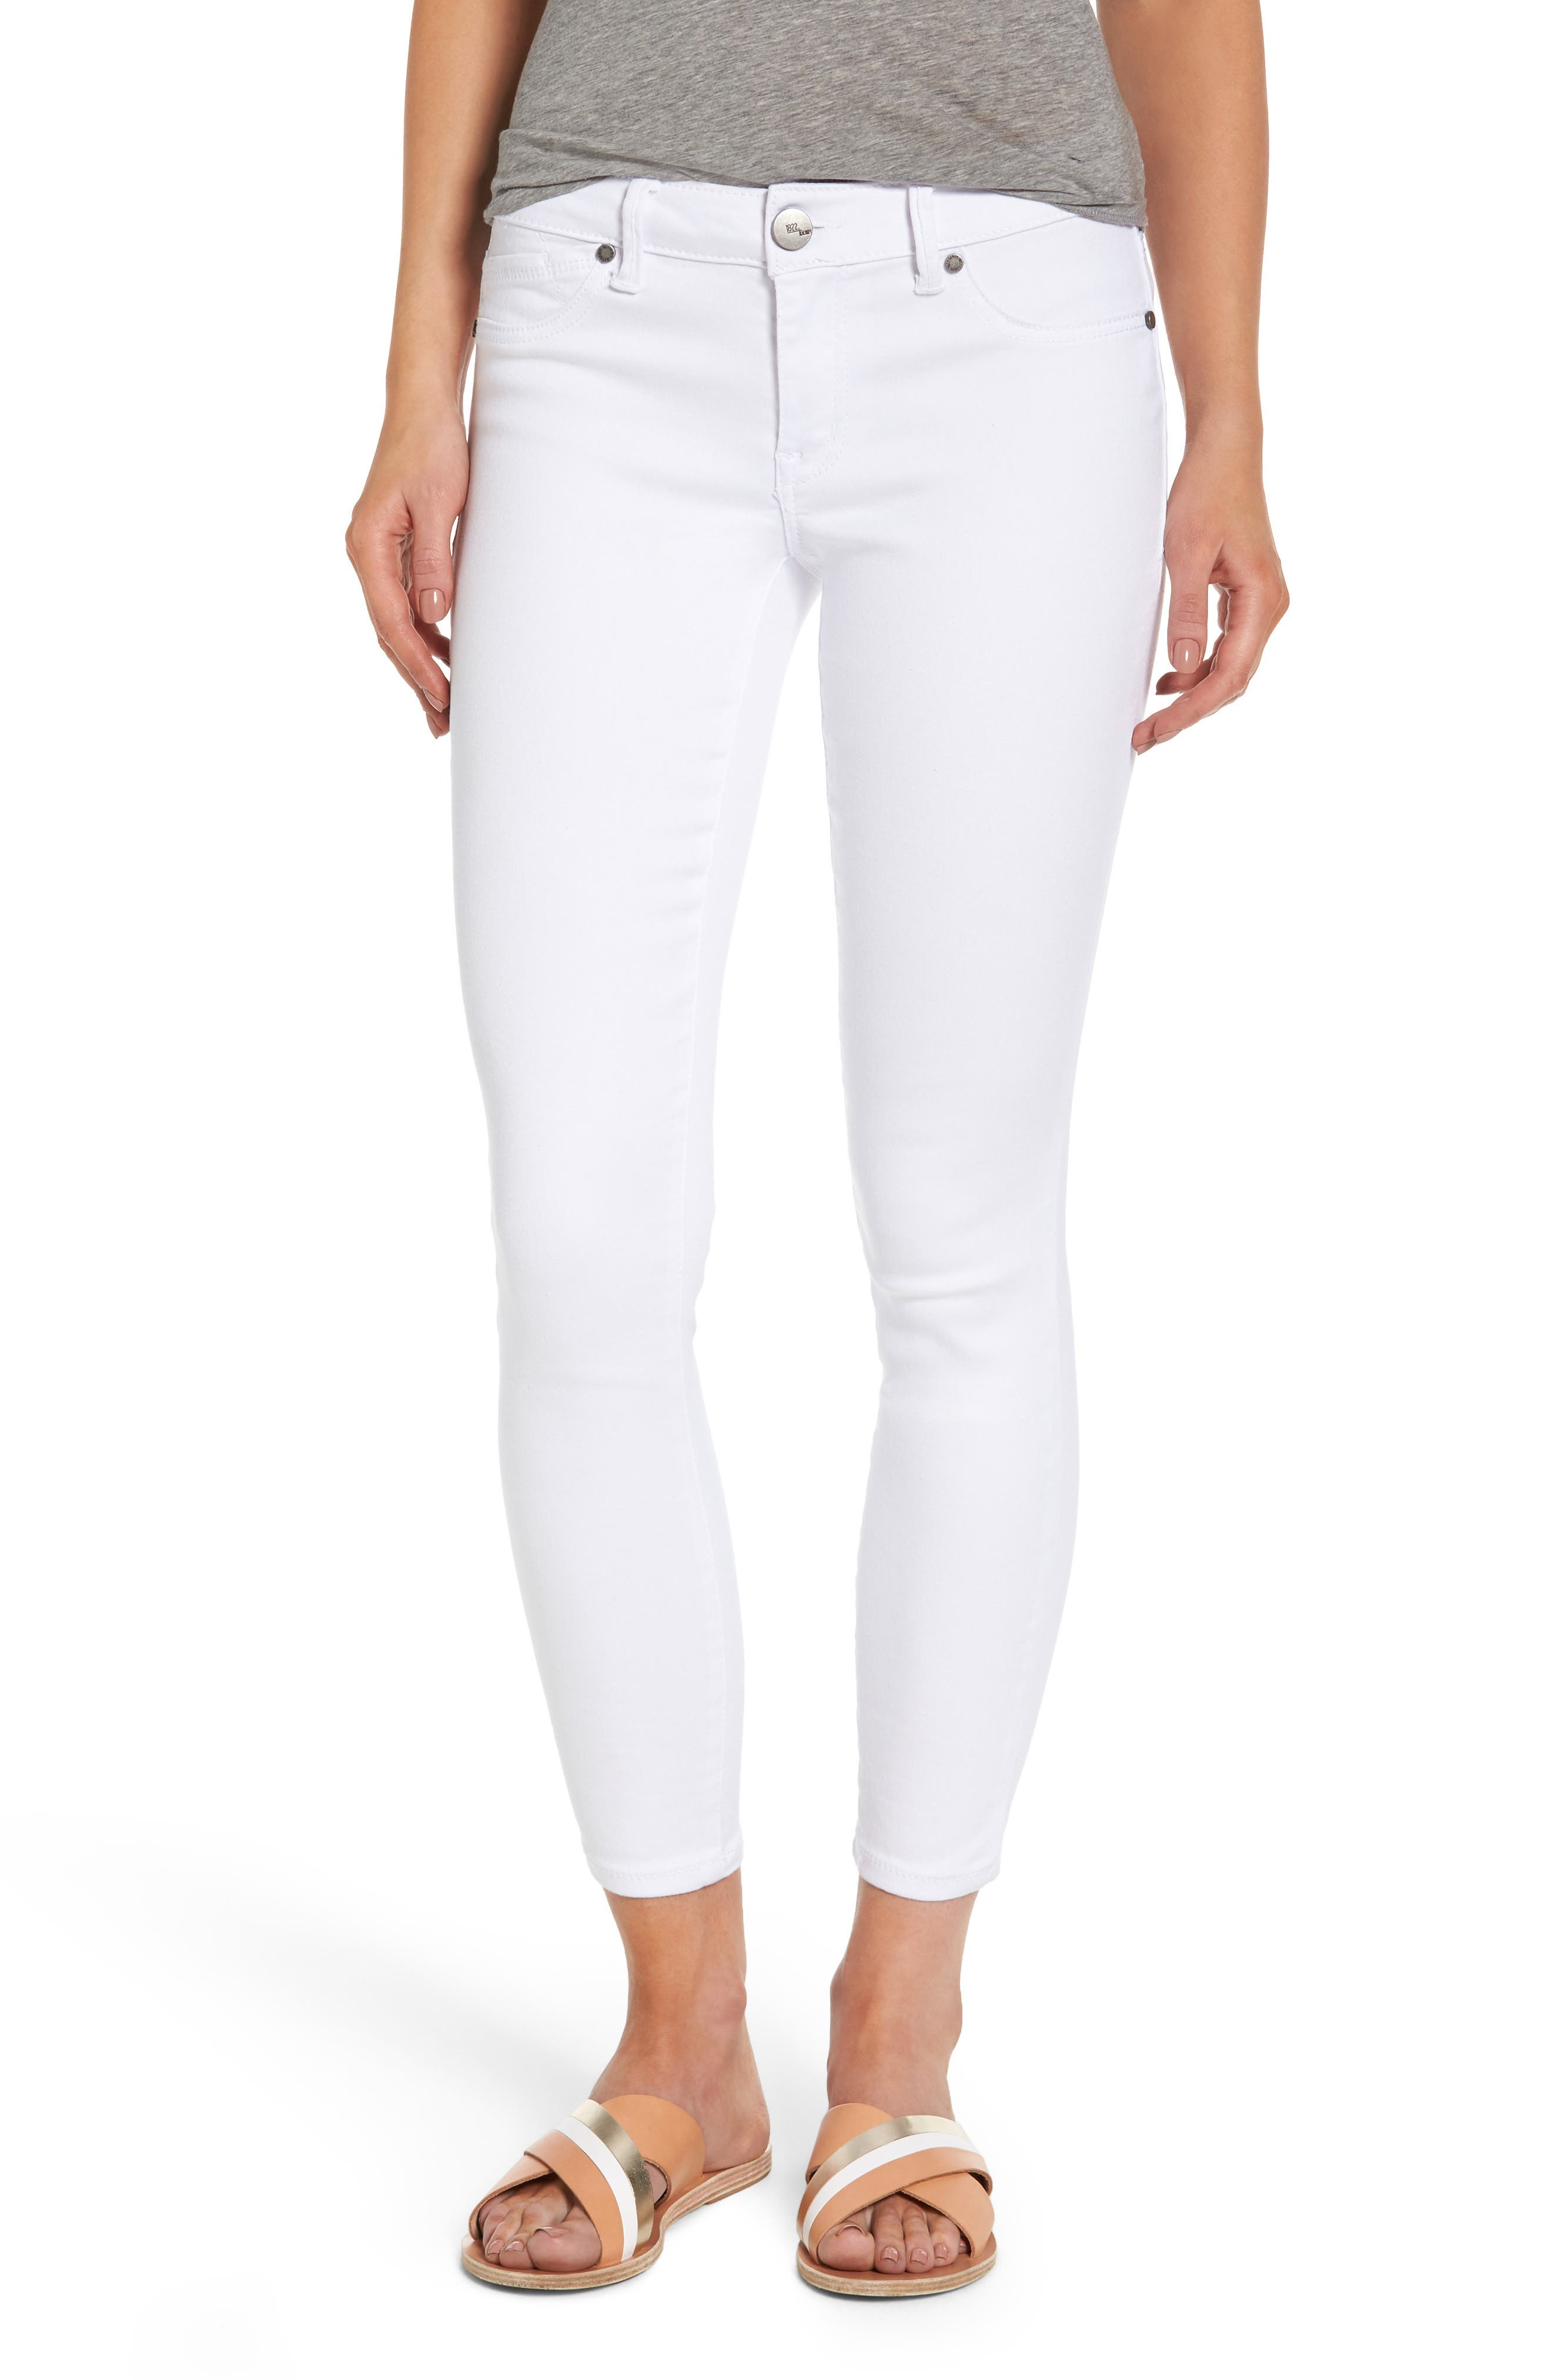 1822 Butter Skinny Jeans,                             Main thumbnail 1, color,                             100